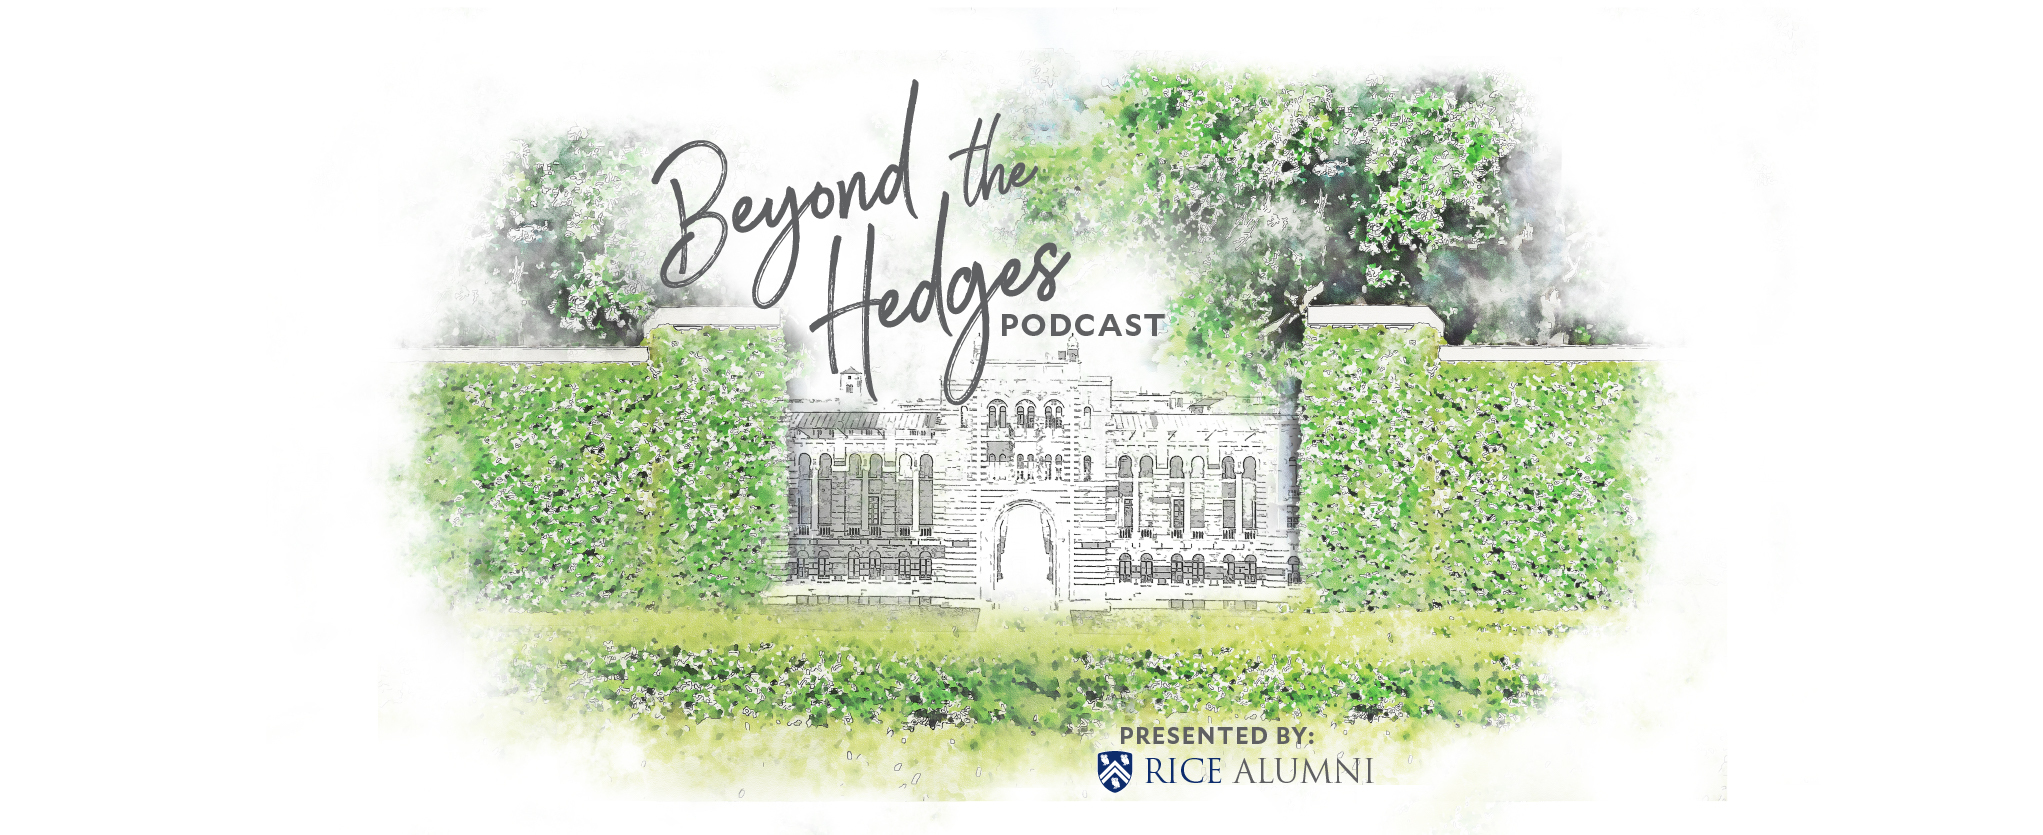 Beyond the Hedges Podcast